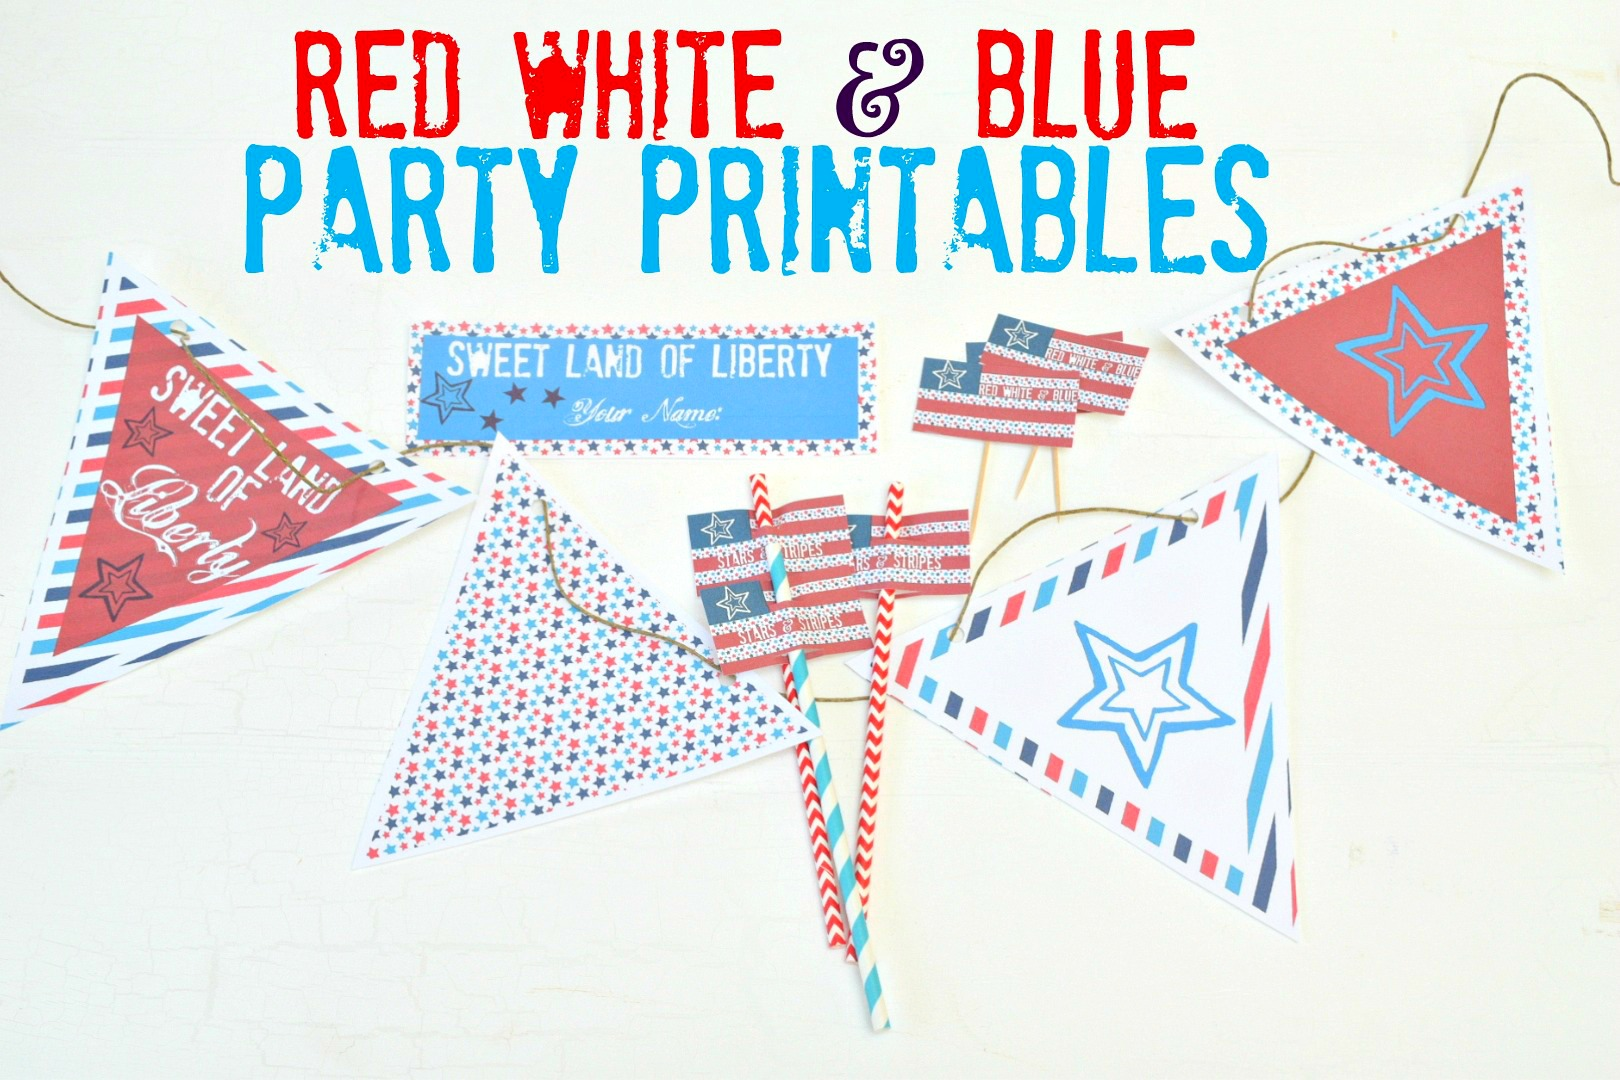 red white & blue party printables